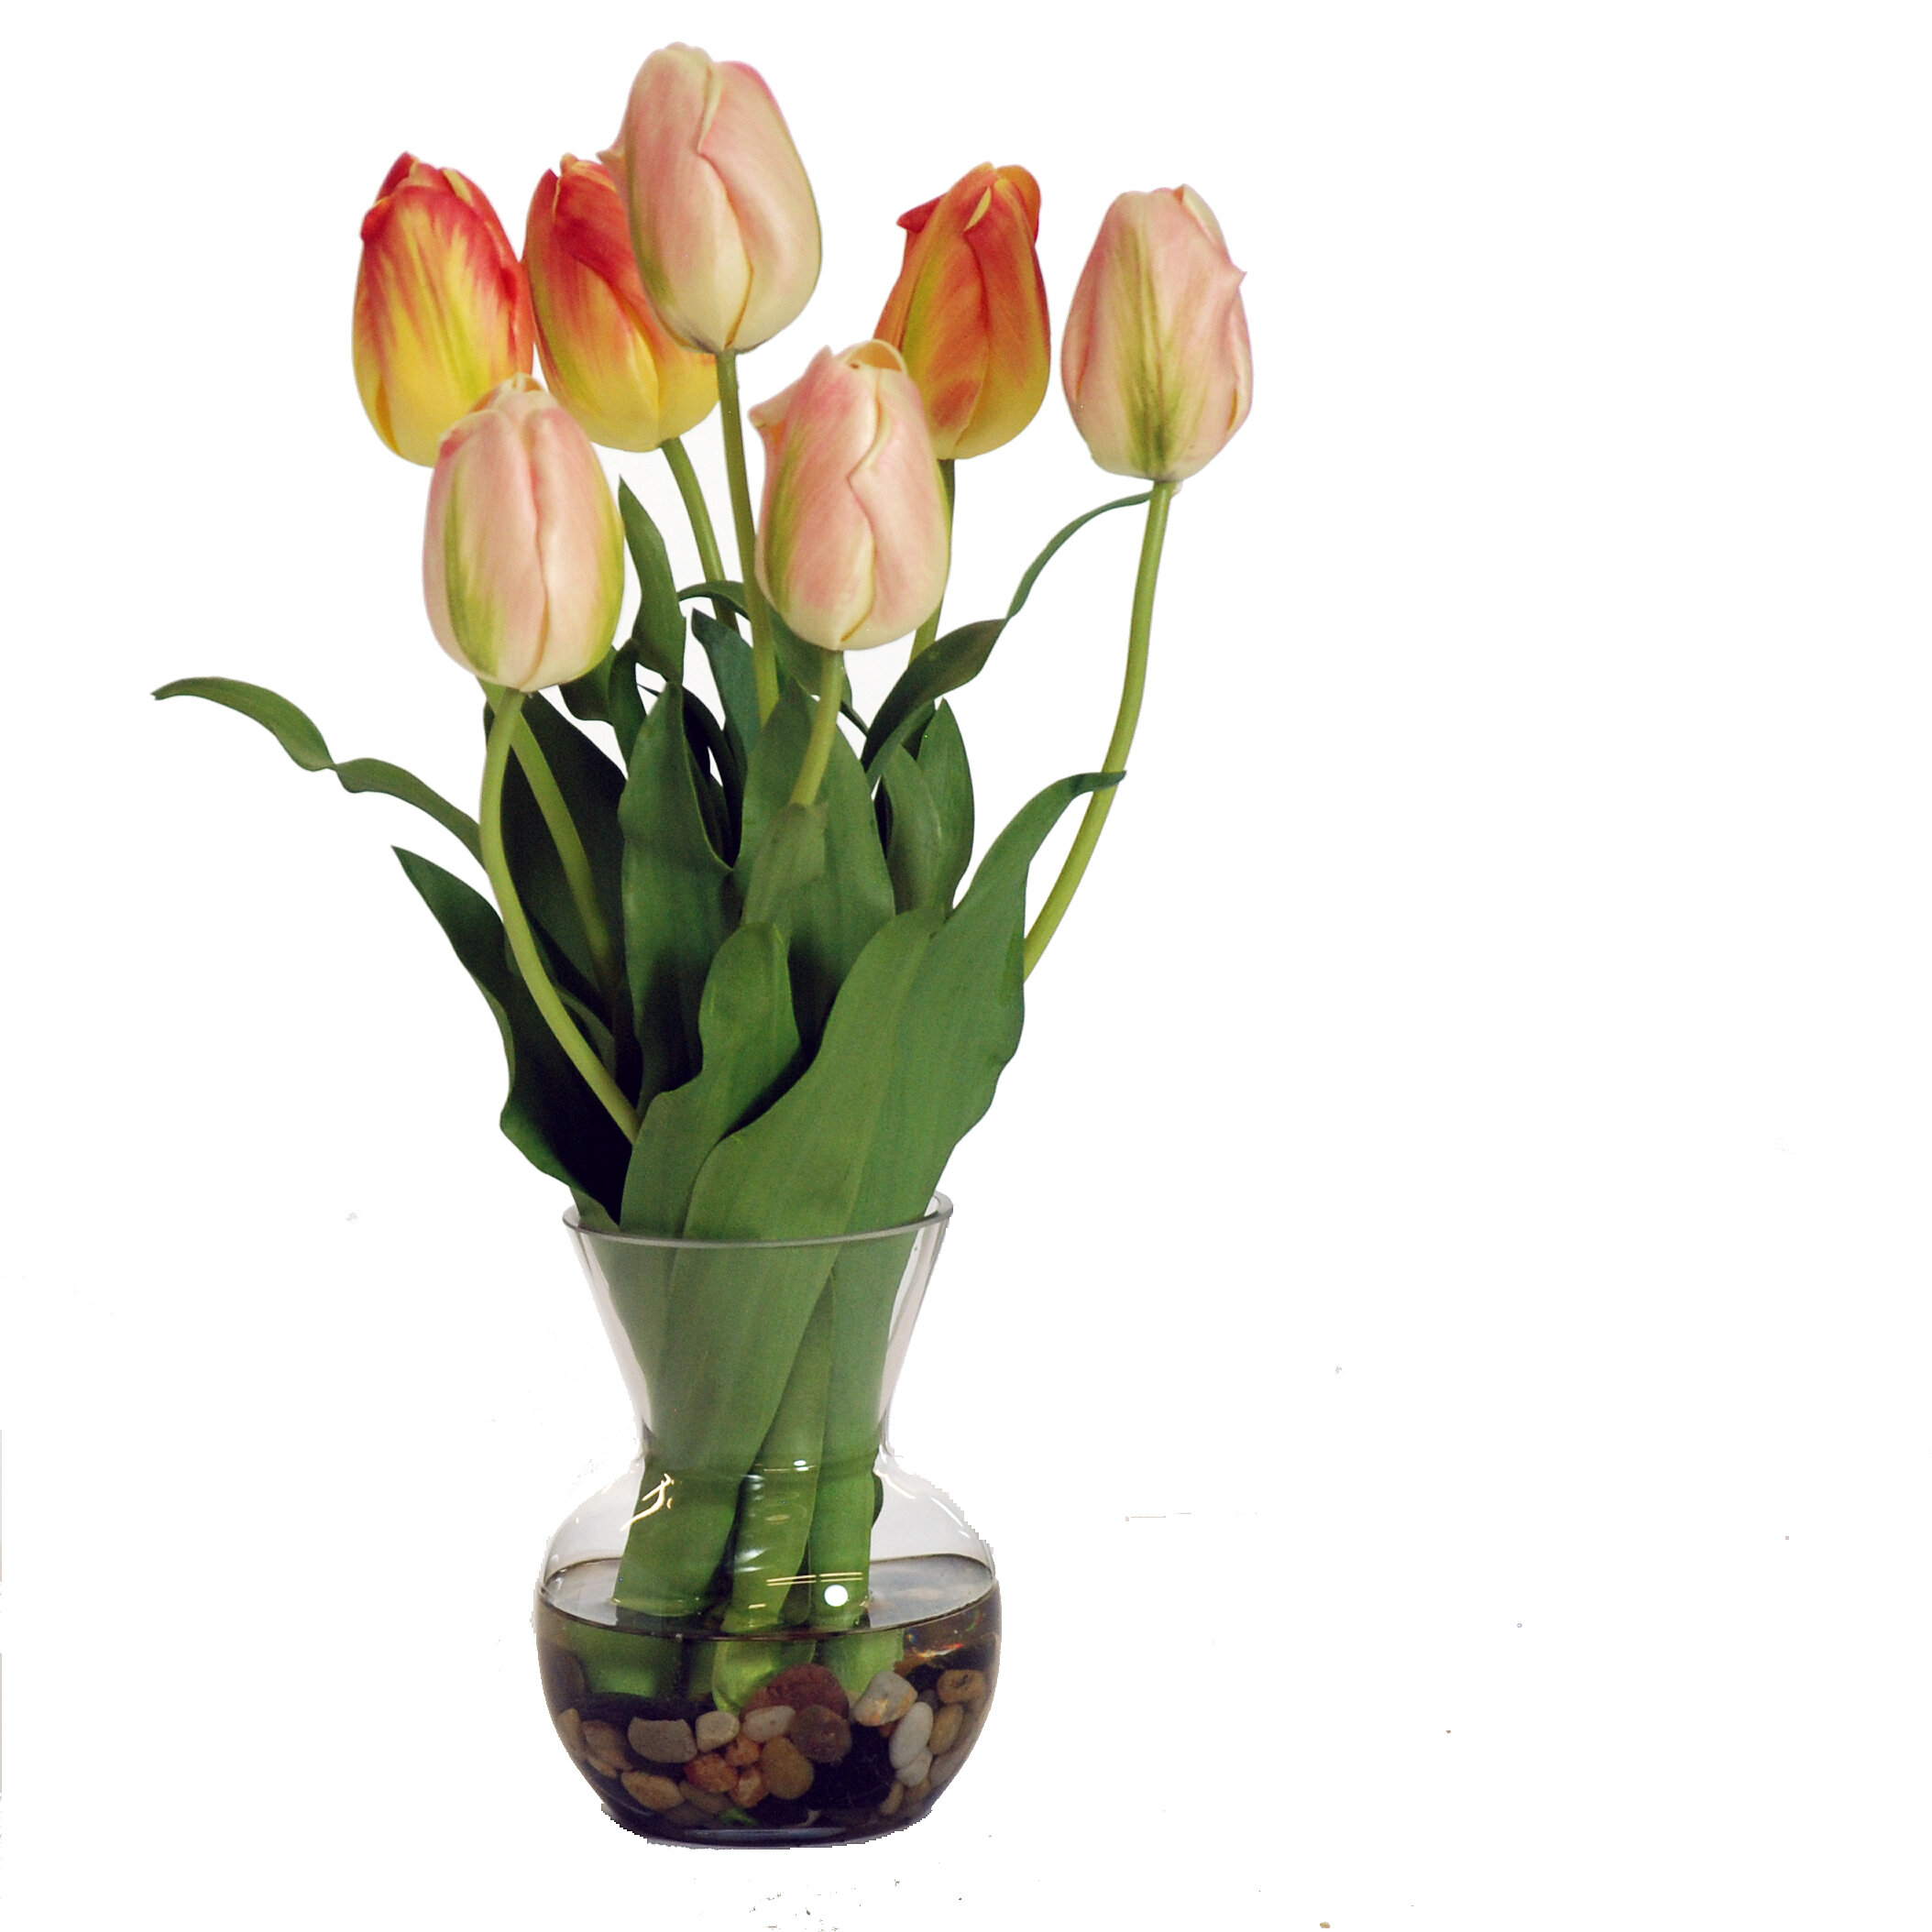 arranged artsy vase to craftsy everyday new advertisements pretty way arrange tulips a img in making